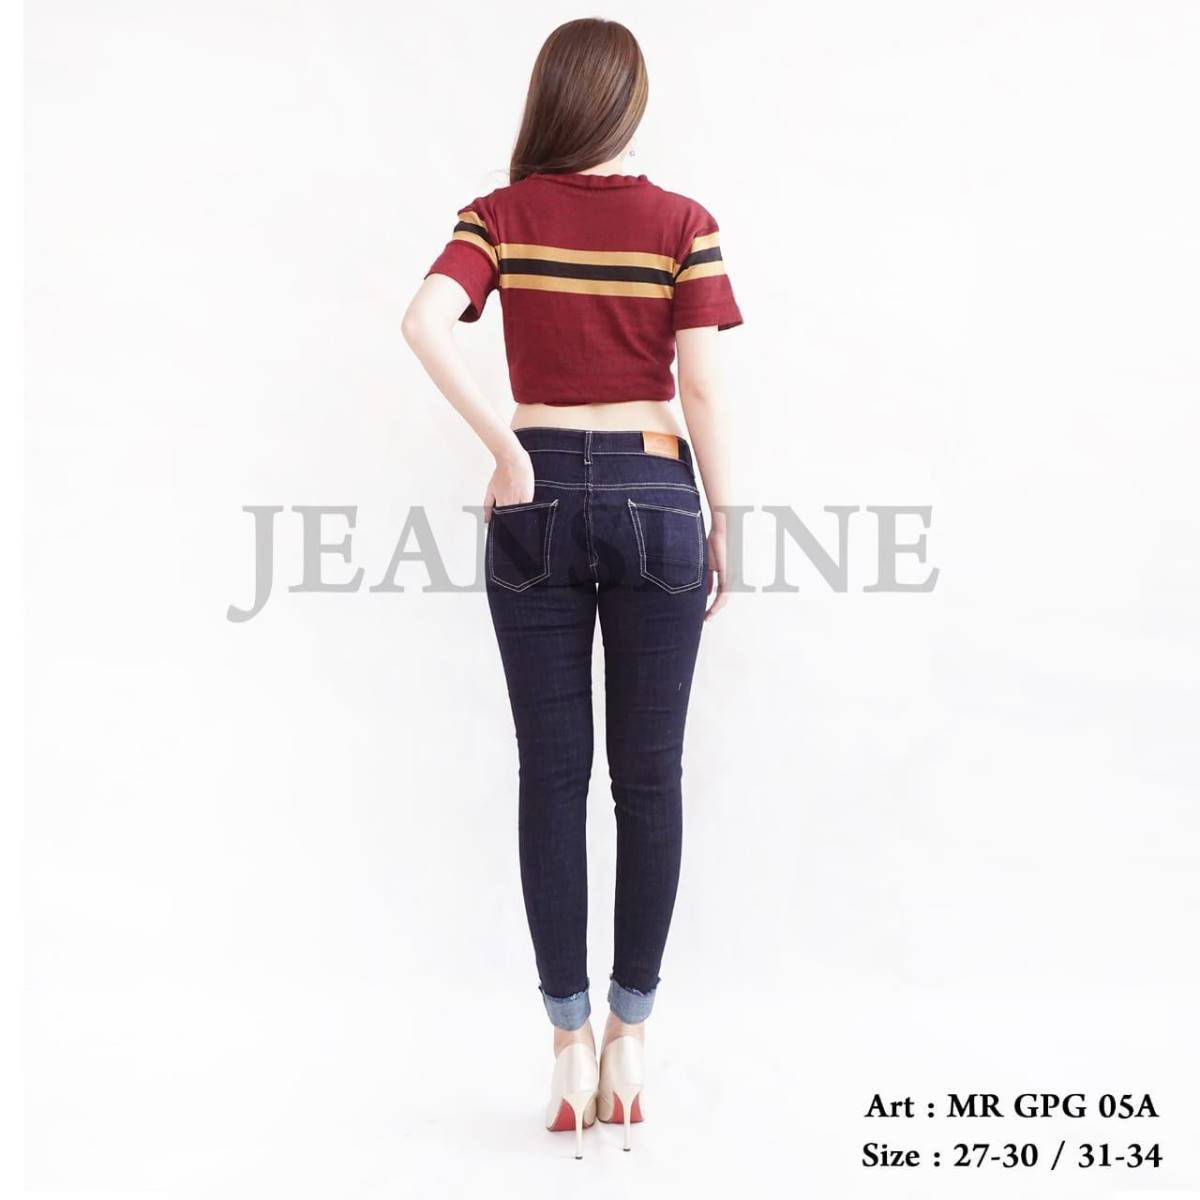 Celana Panjang Jeans Ladies (mr Gpg 05a) - Paket 12 Pcs - Size 31, 32, 33, 342